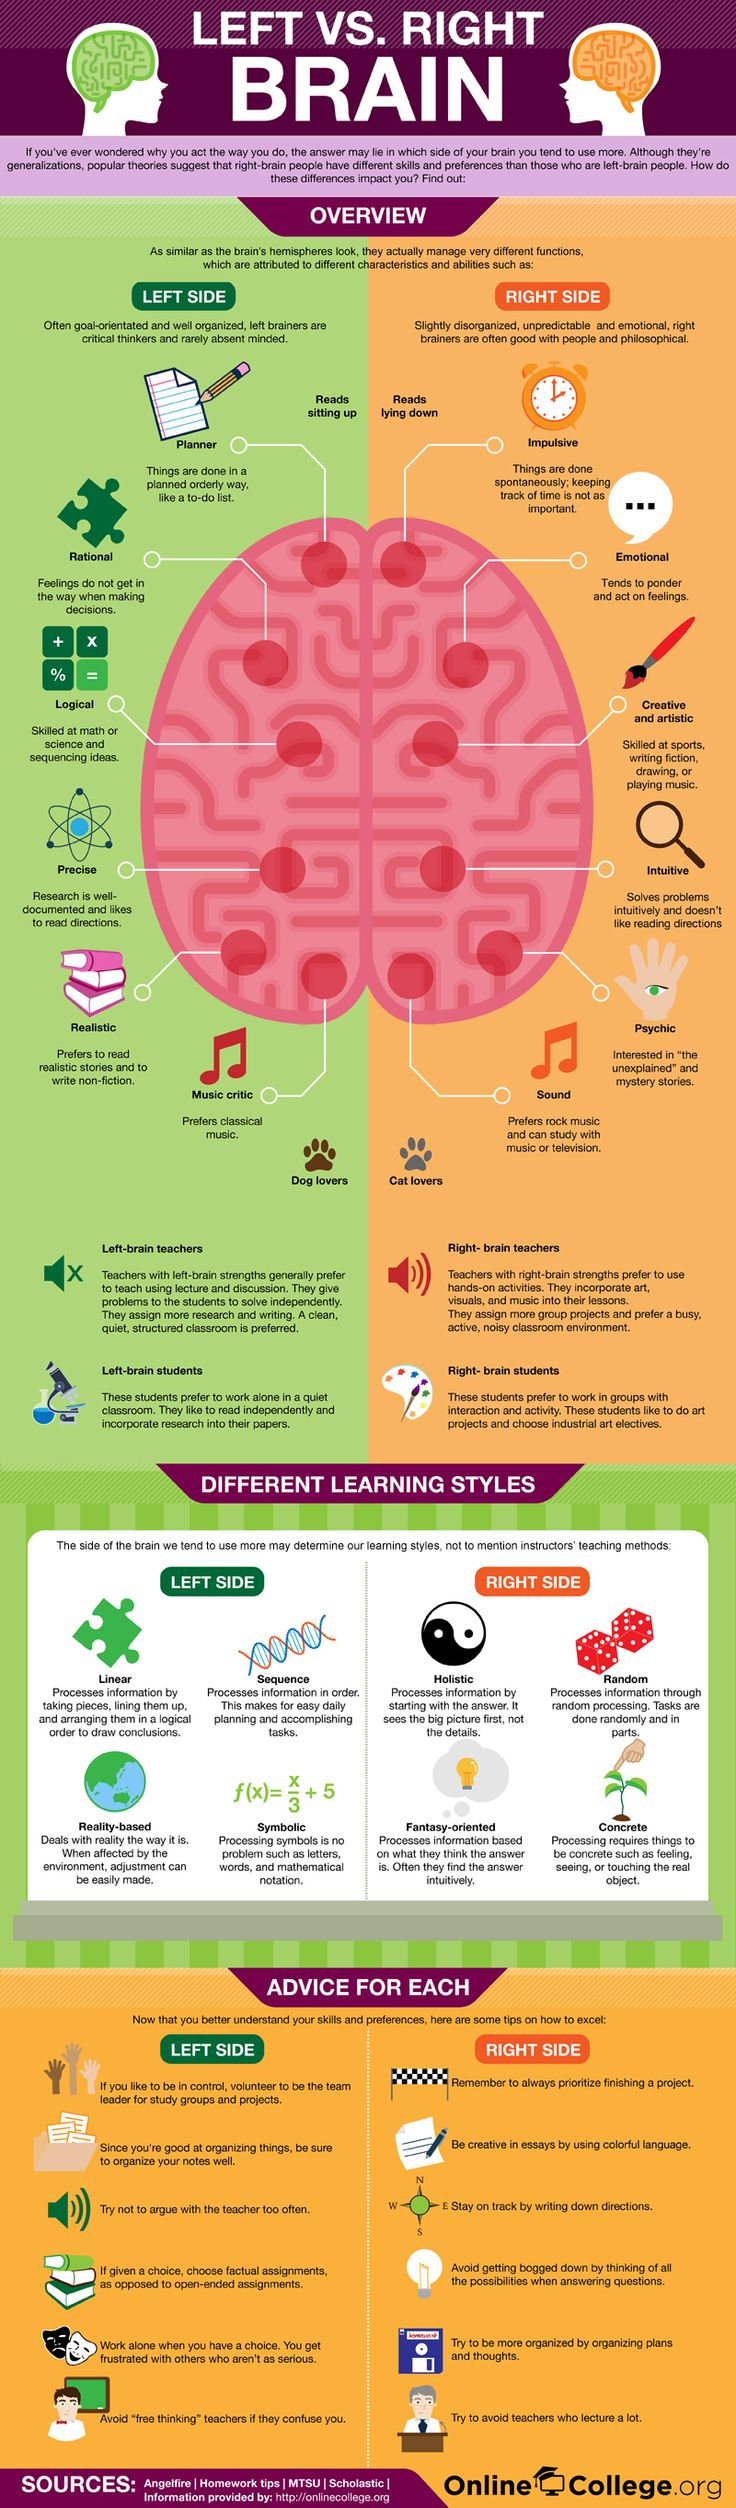 Left/Right Brain, personality tests and learning styles always interest me!Personalized Test, Leftright Brain, Stuff, Learning Style, Leftrightbrain, Leftbrain, Interesting, Left Brain, Infographic